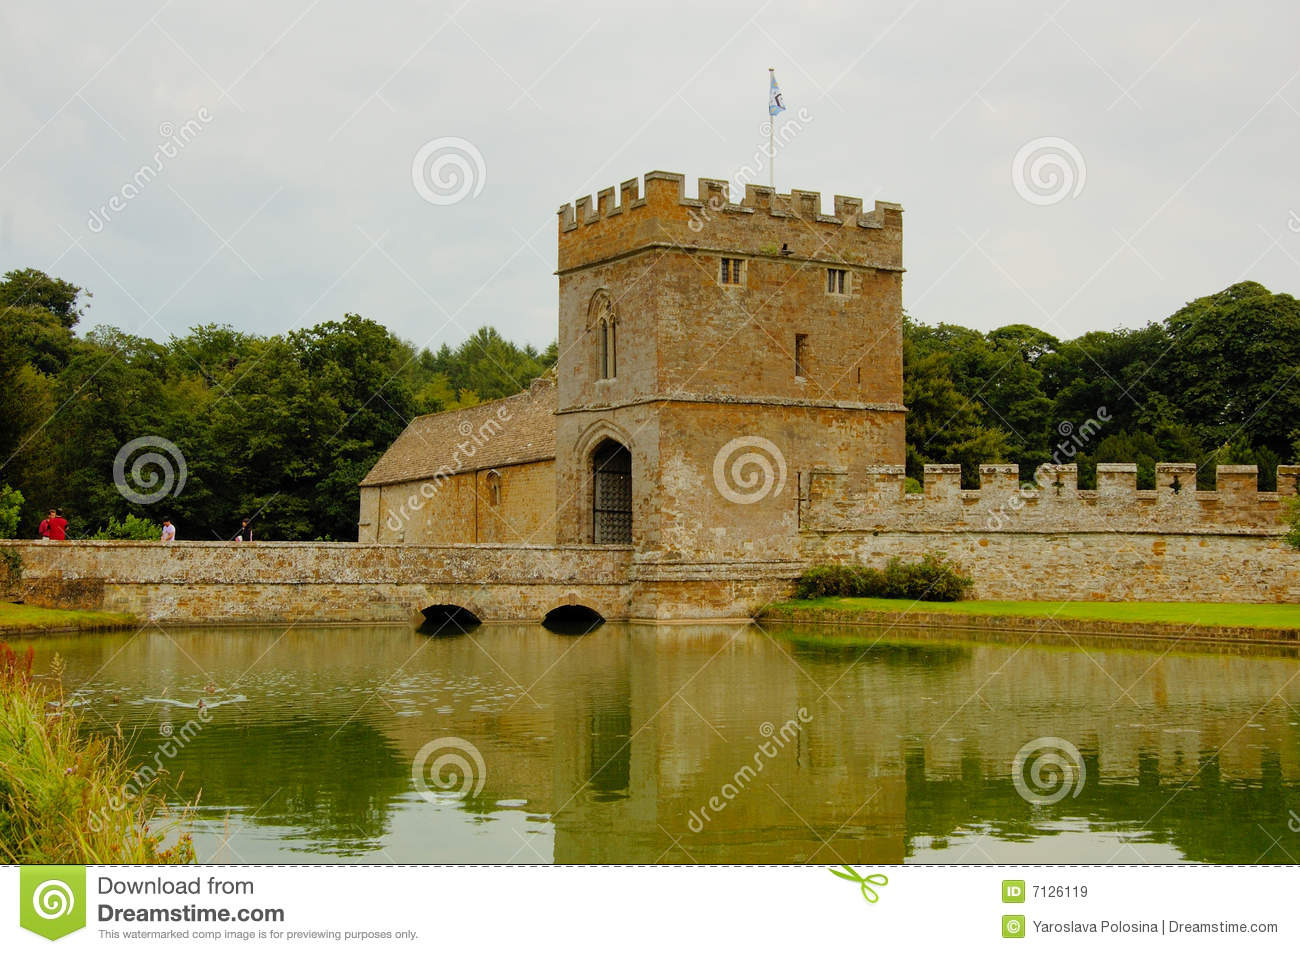 Moat And Manor House In The Medieval Castle Royalty Free